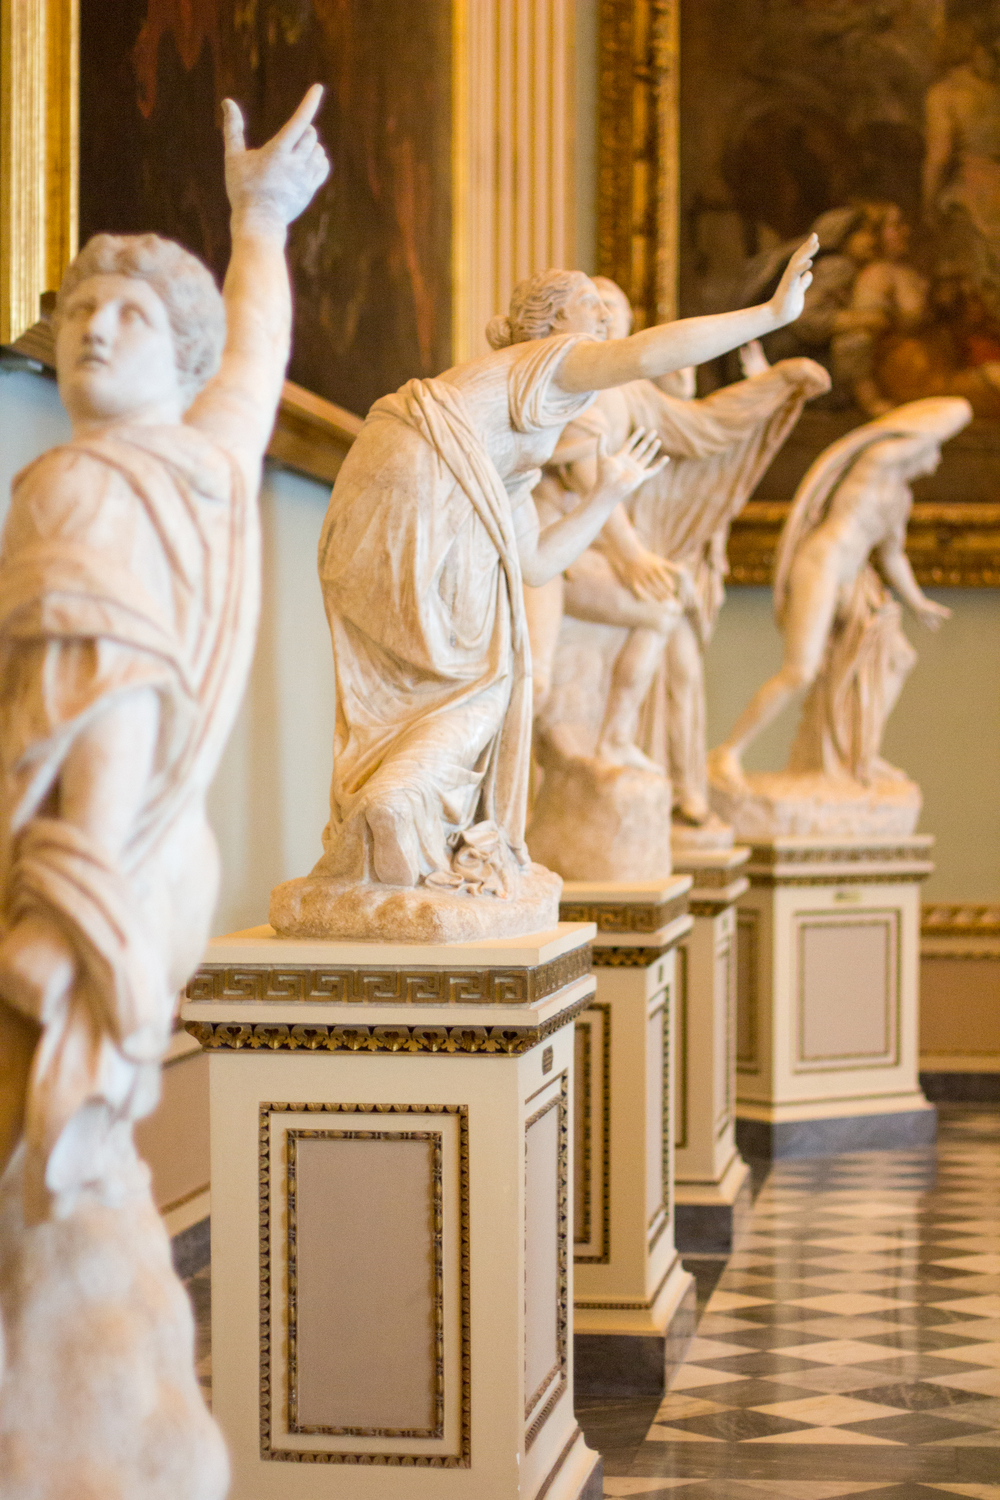 The thousands of years of history in museums like the Uffizi